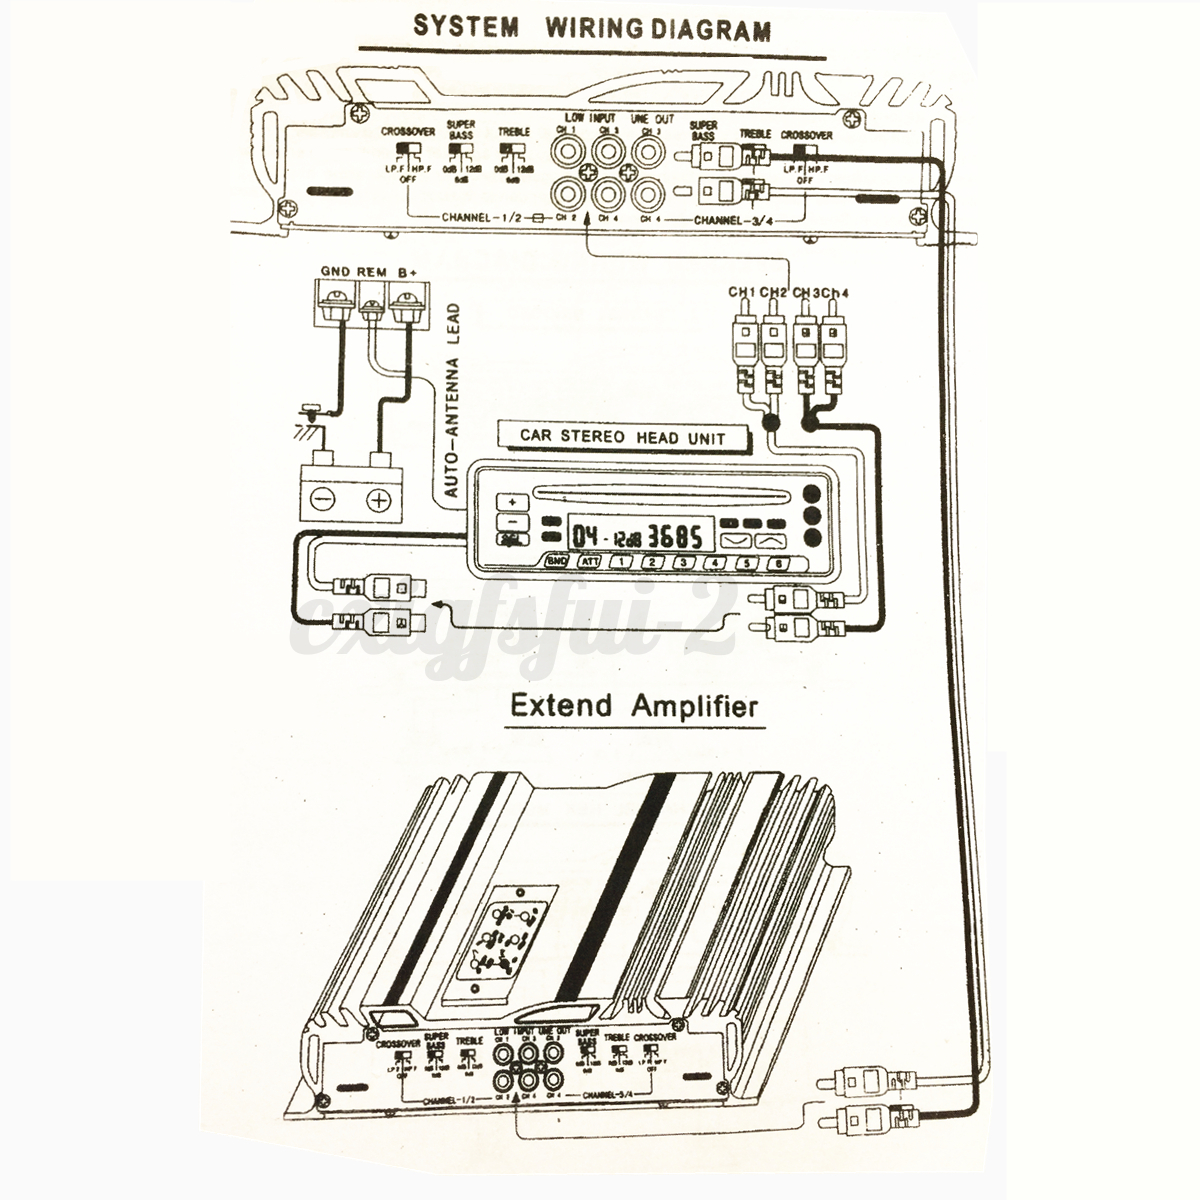 V rms ch channel car audio power stereo